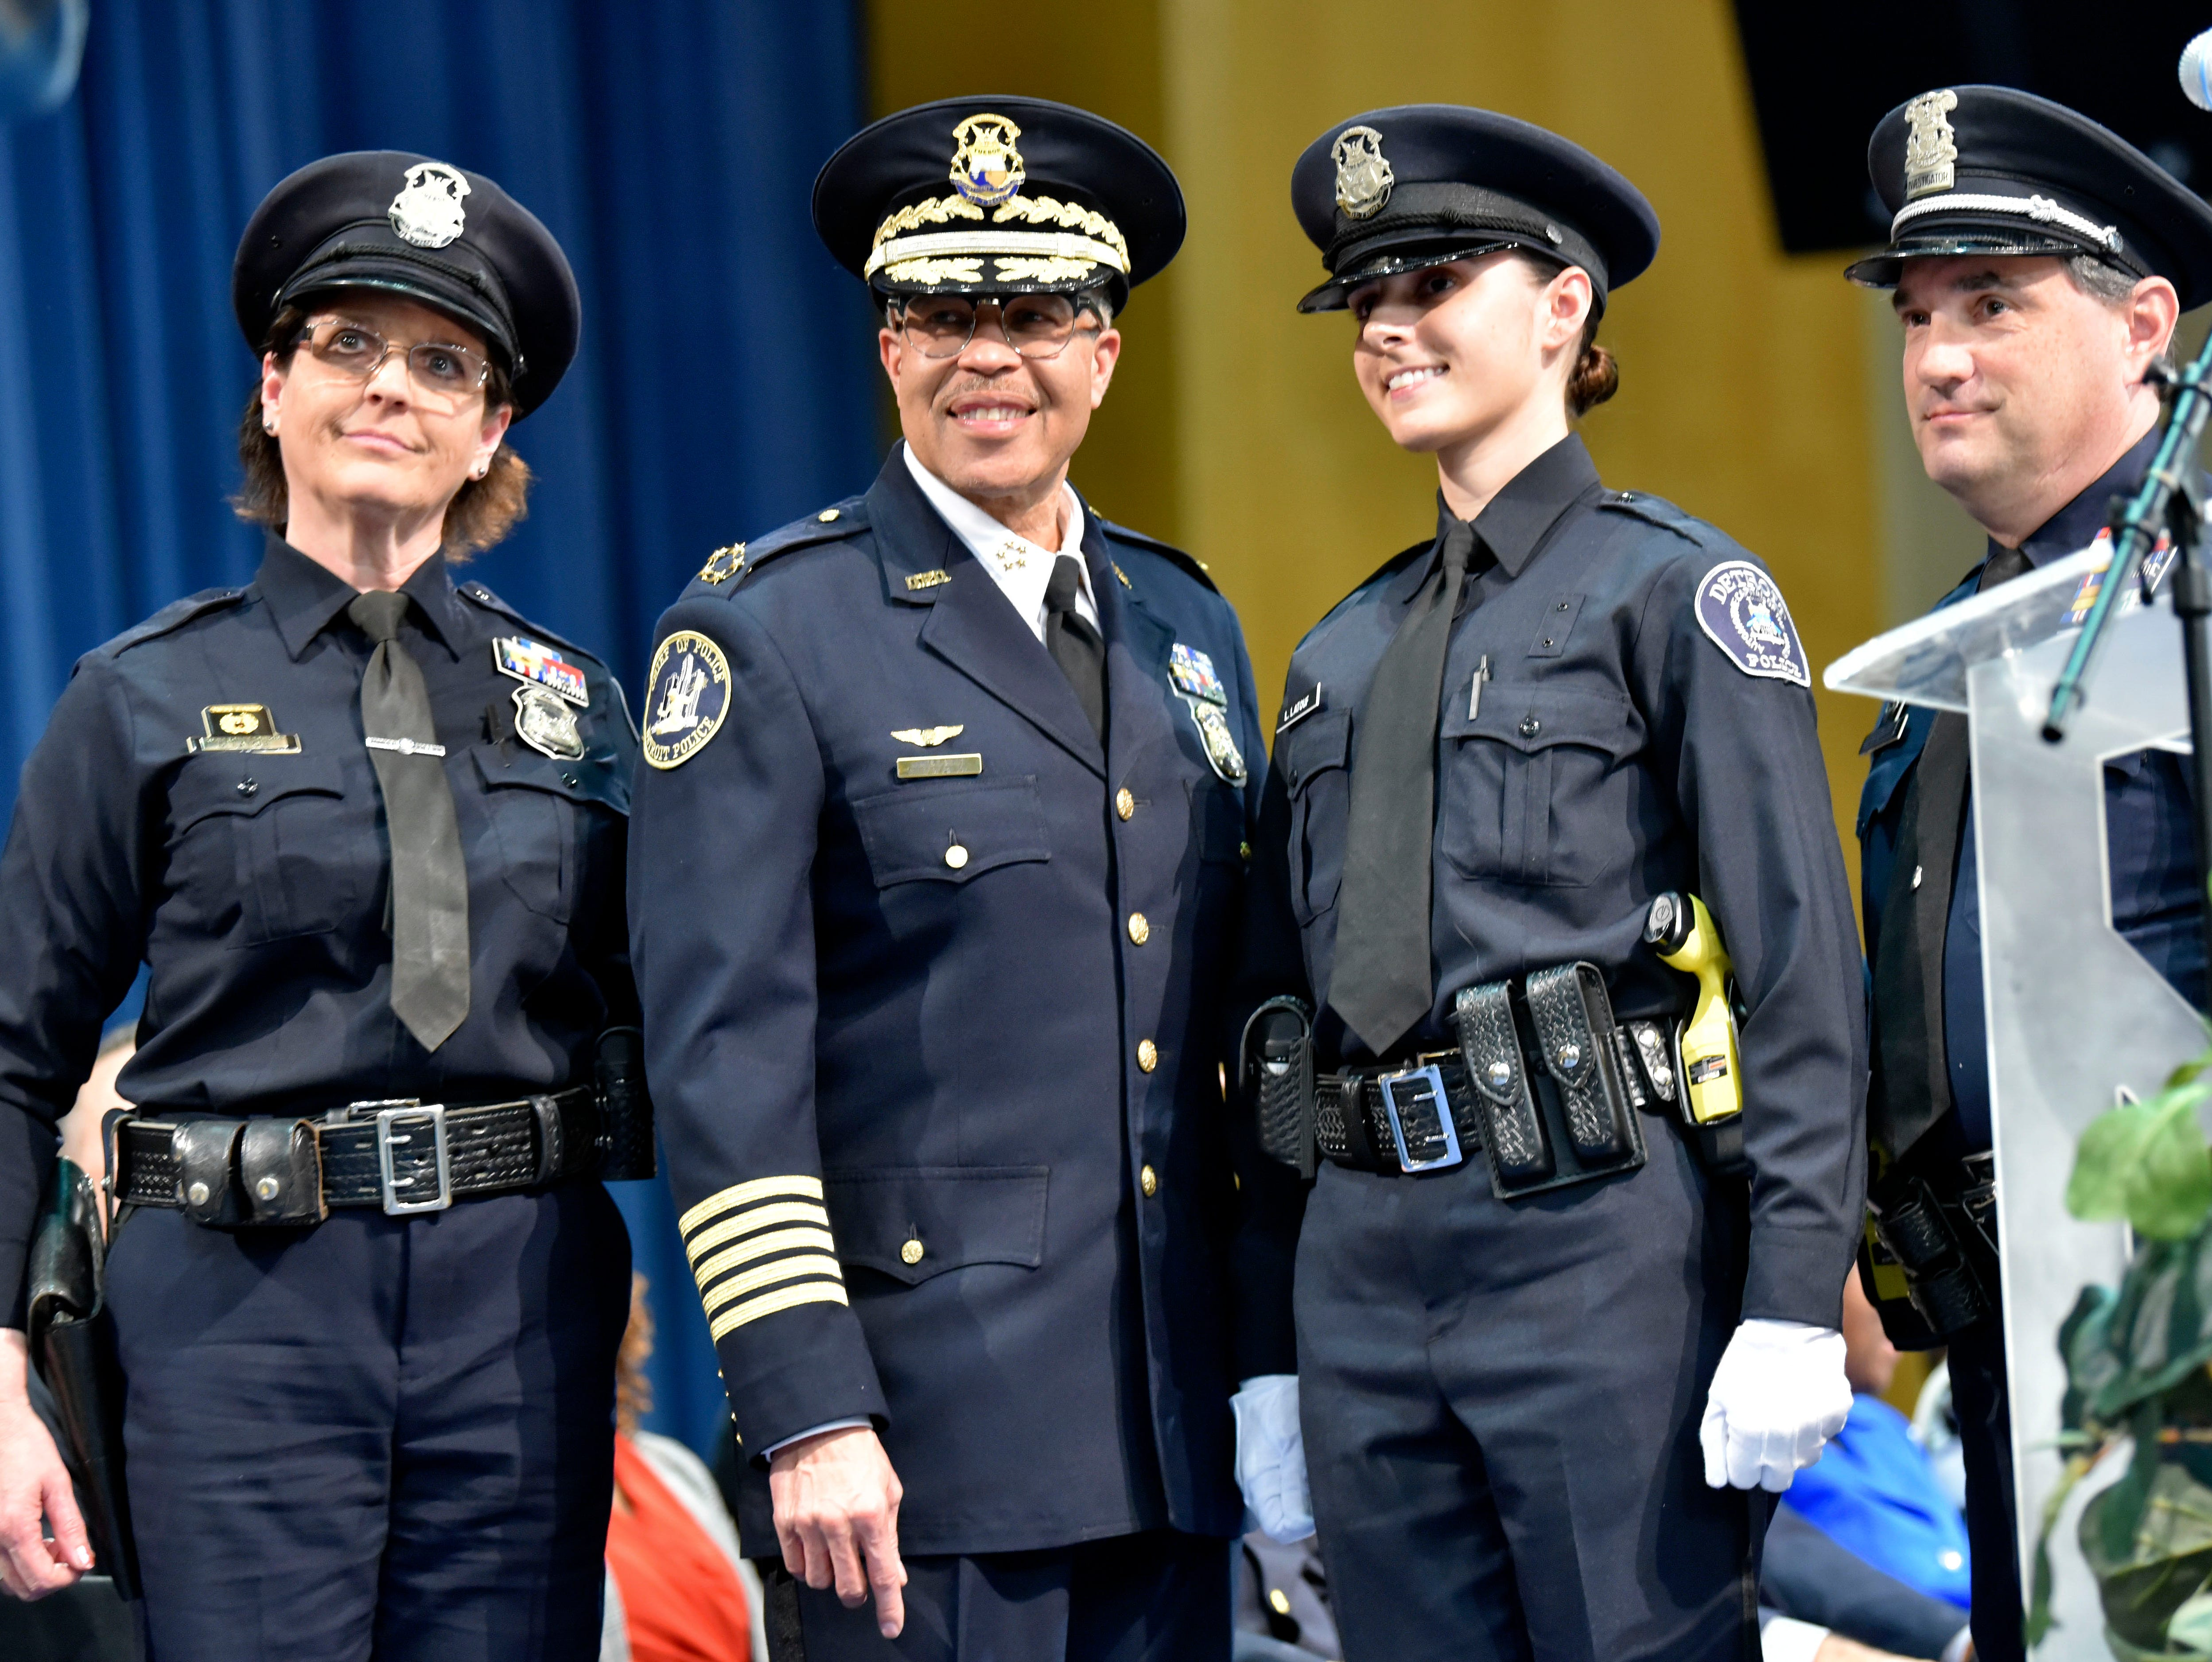 After being presented with her badge by Police Chief James Craig, second from left, newly sworn officer Lisa Latouf poses with her mother, Detroit Police Officer Donna Latouf, left, and uncle, Detroit Police Investigator Tim Ewald.